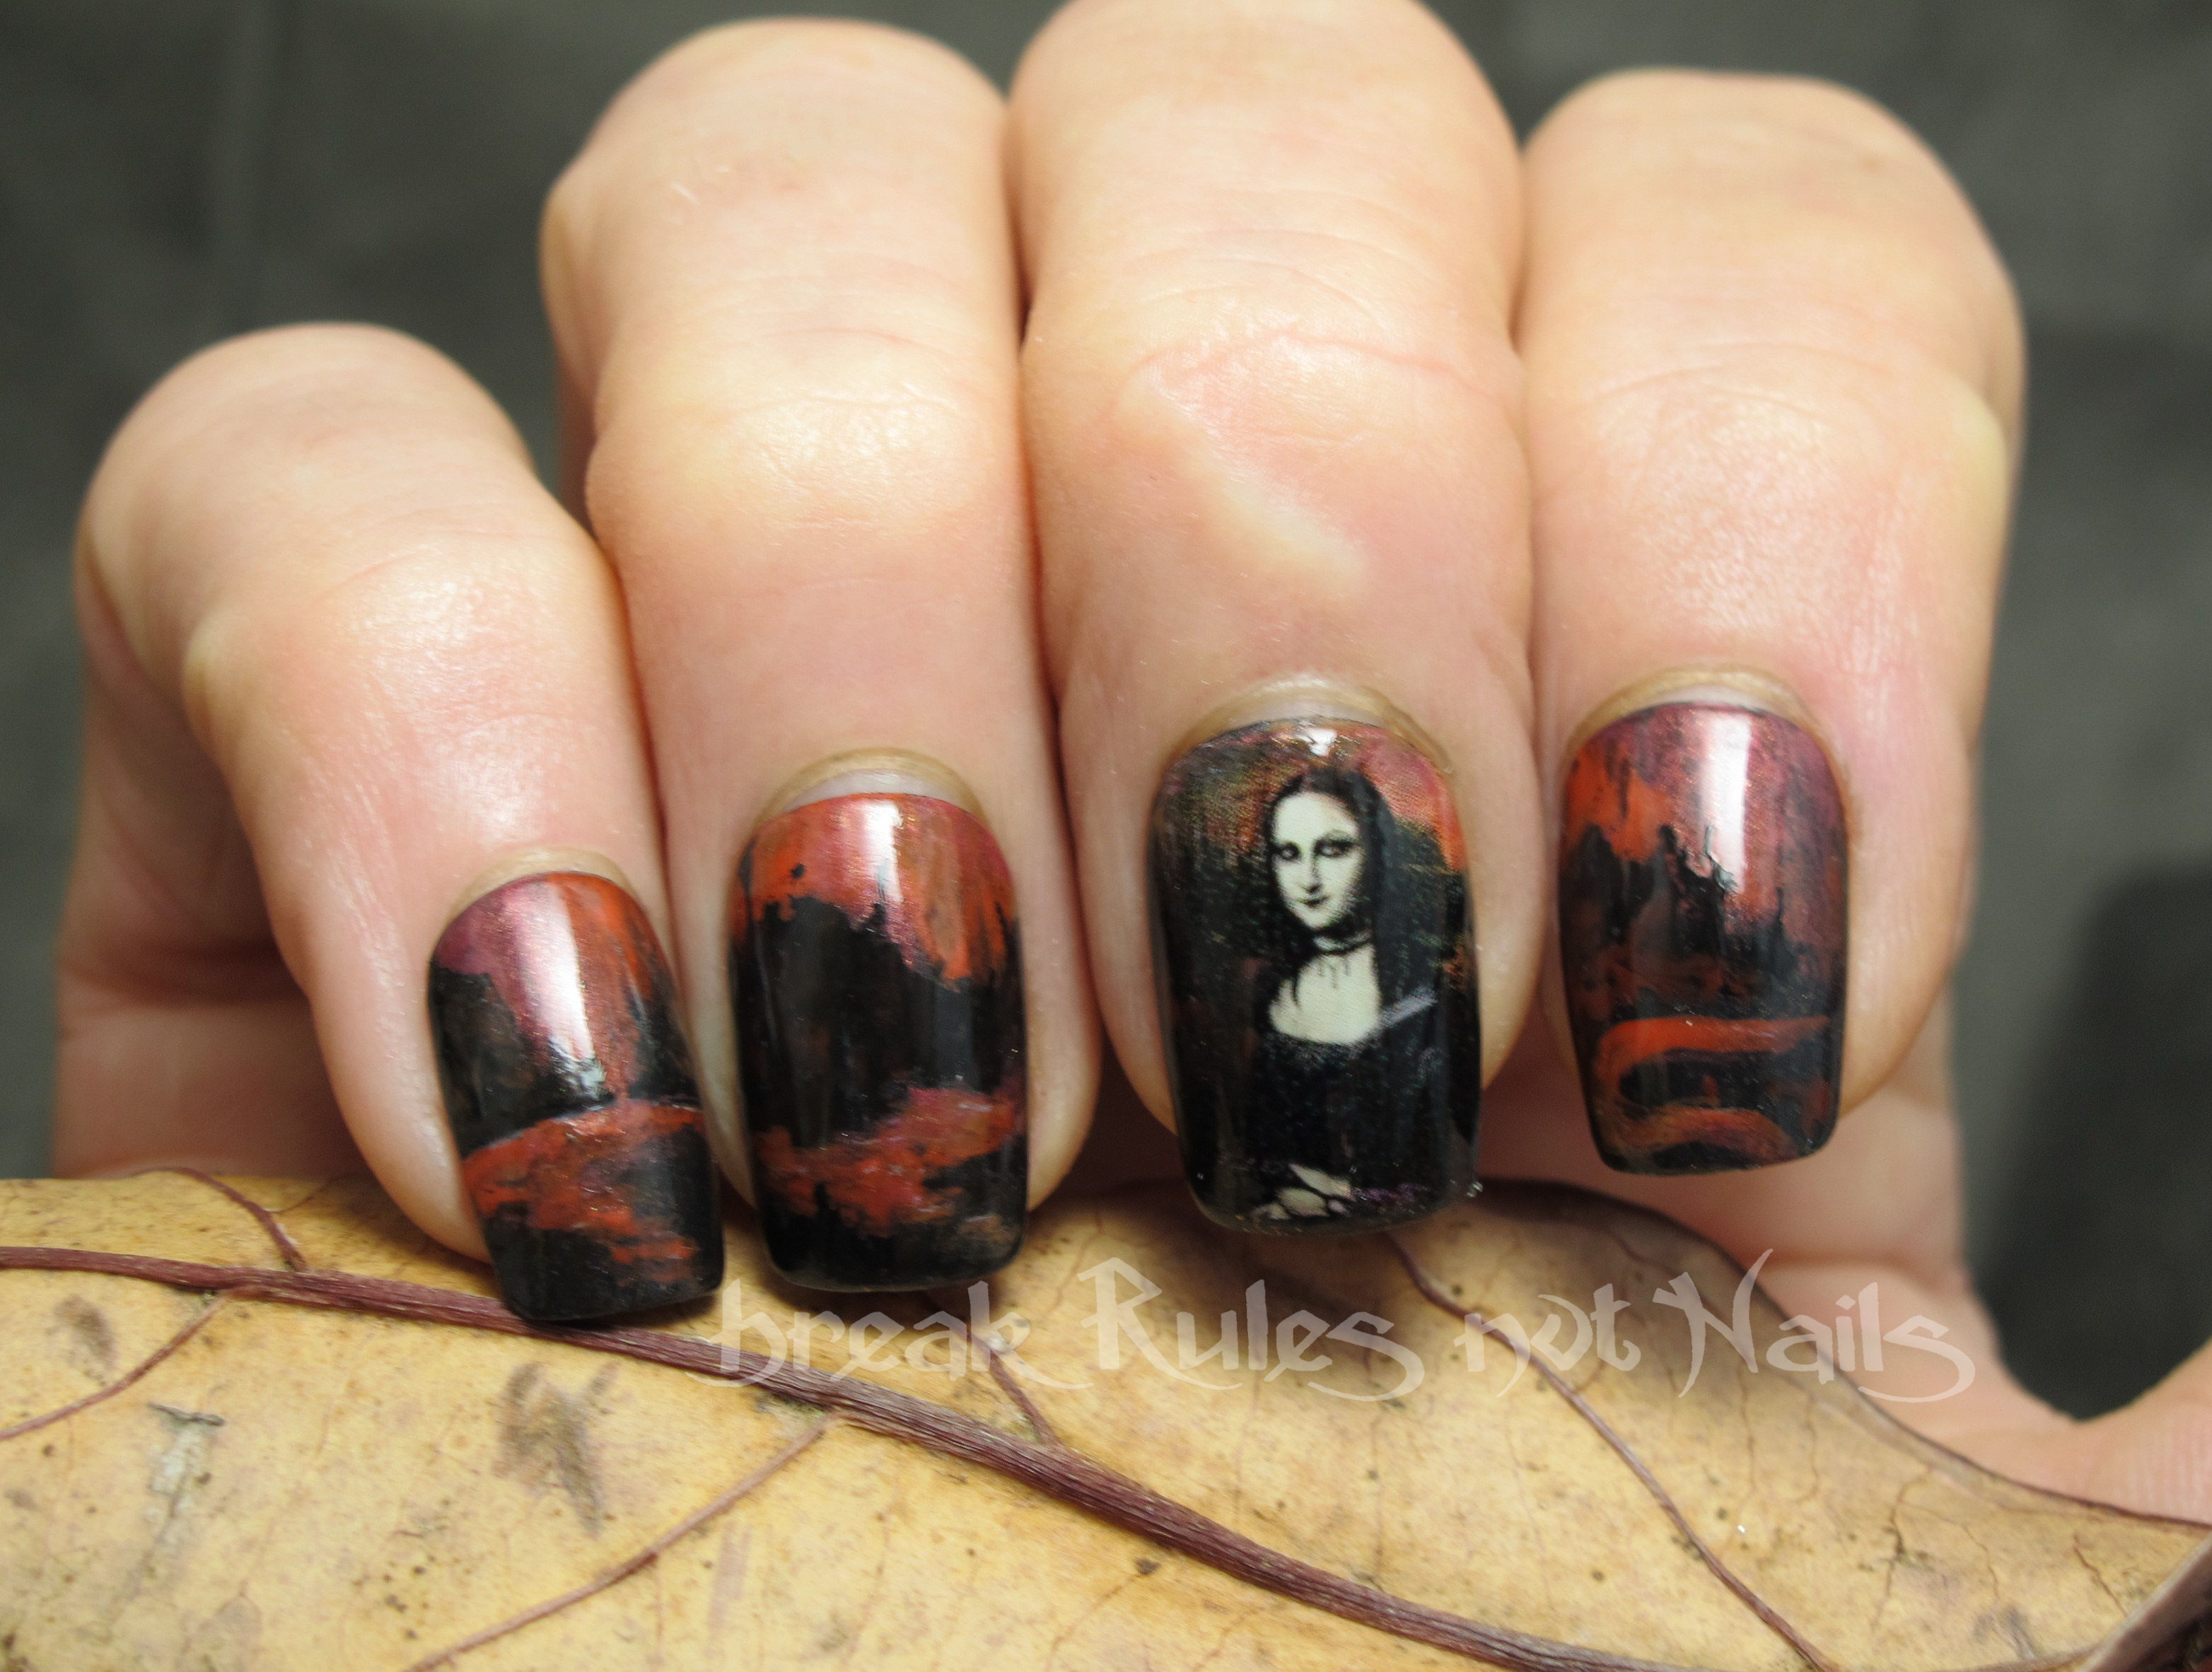 Goth Mona Lisa nail art | Break rules, not nails